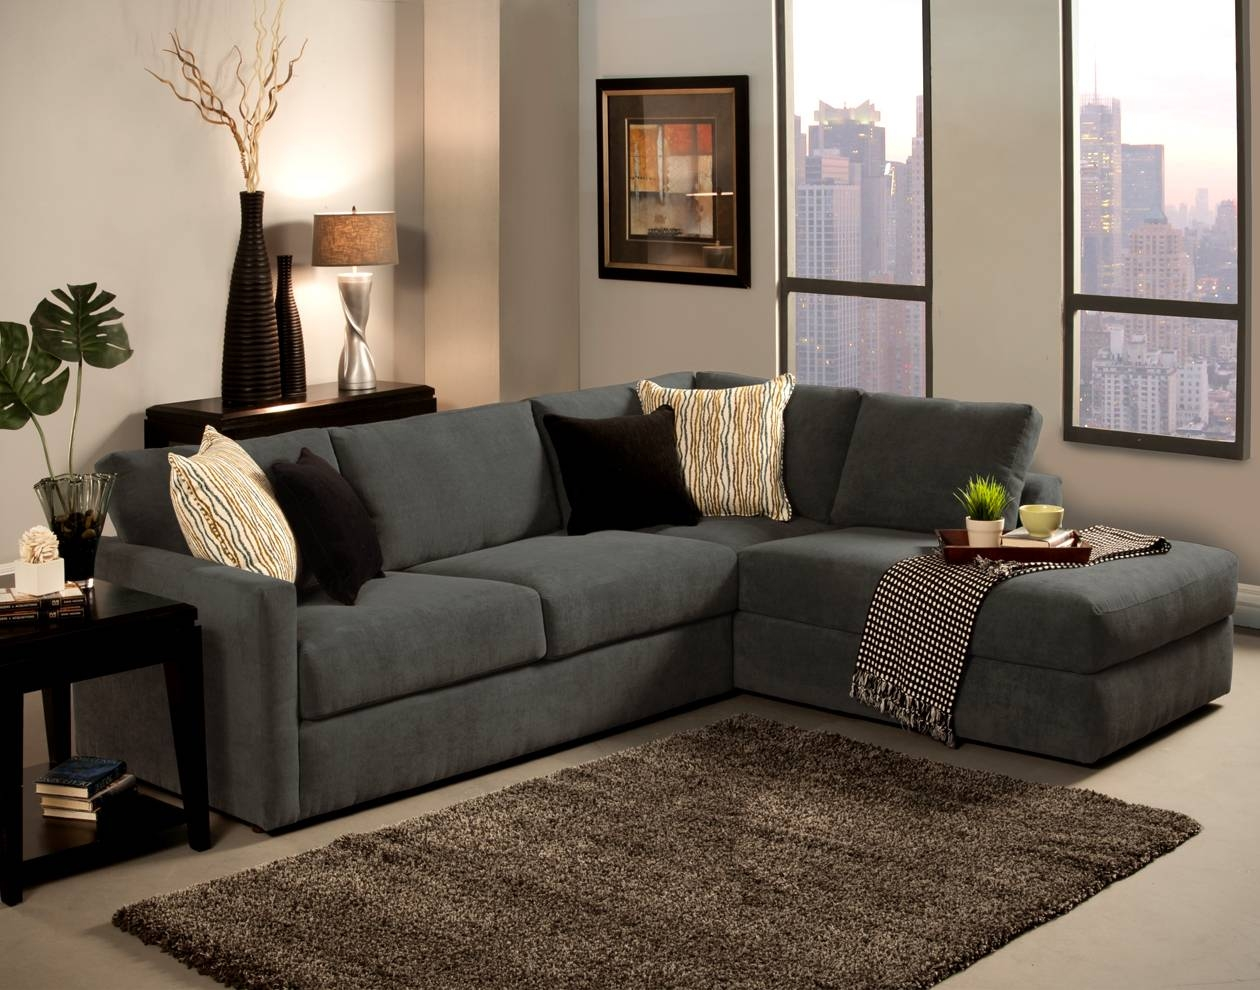 Amazing Small Sectional Sofa With Chaise Lounge 77 With Additional Intended For Small Sofas With Chaise Lounge (Photo 10 of 15)